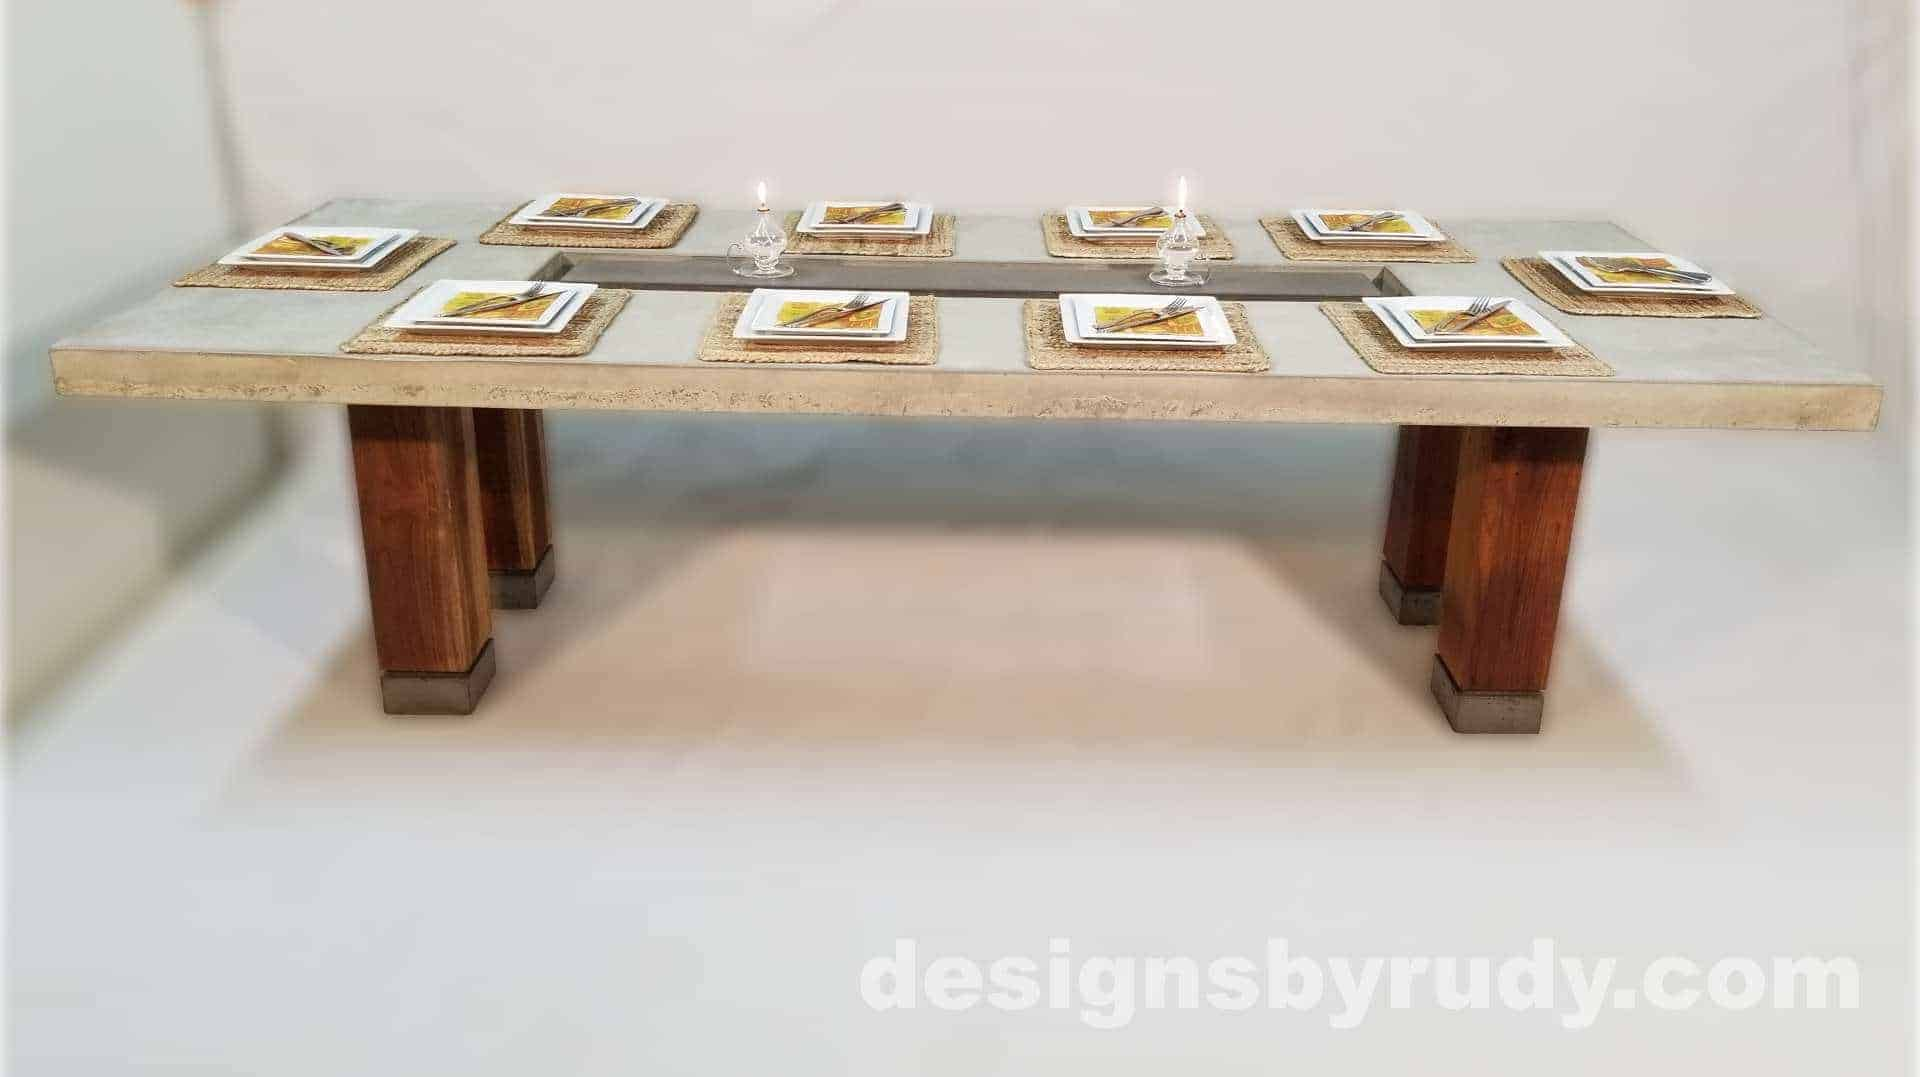 Concrete Top Dining Table On Teak Legs With Center Serving Tray   Front  View, Designs